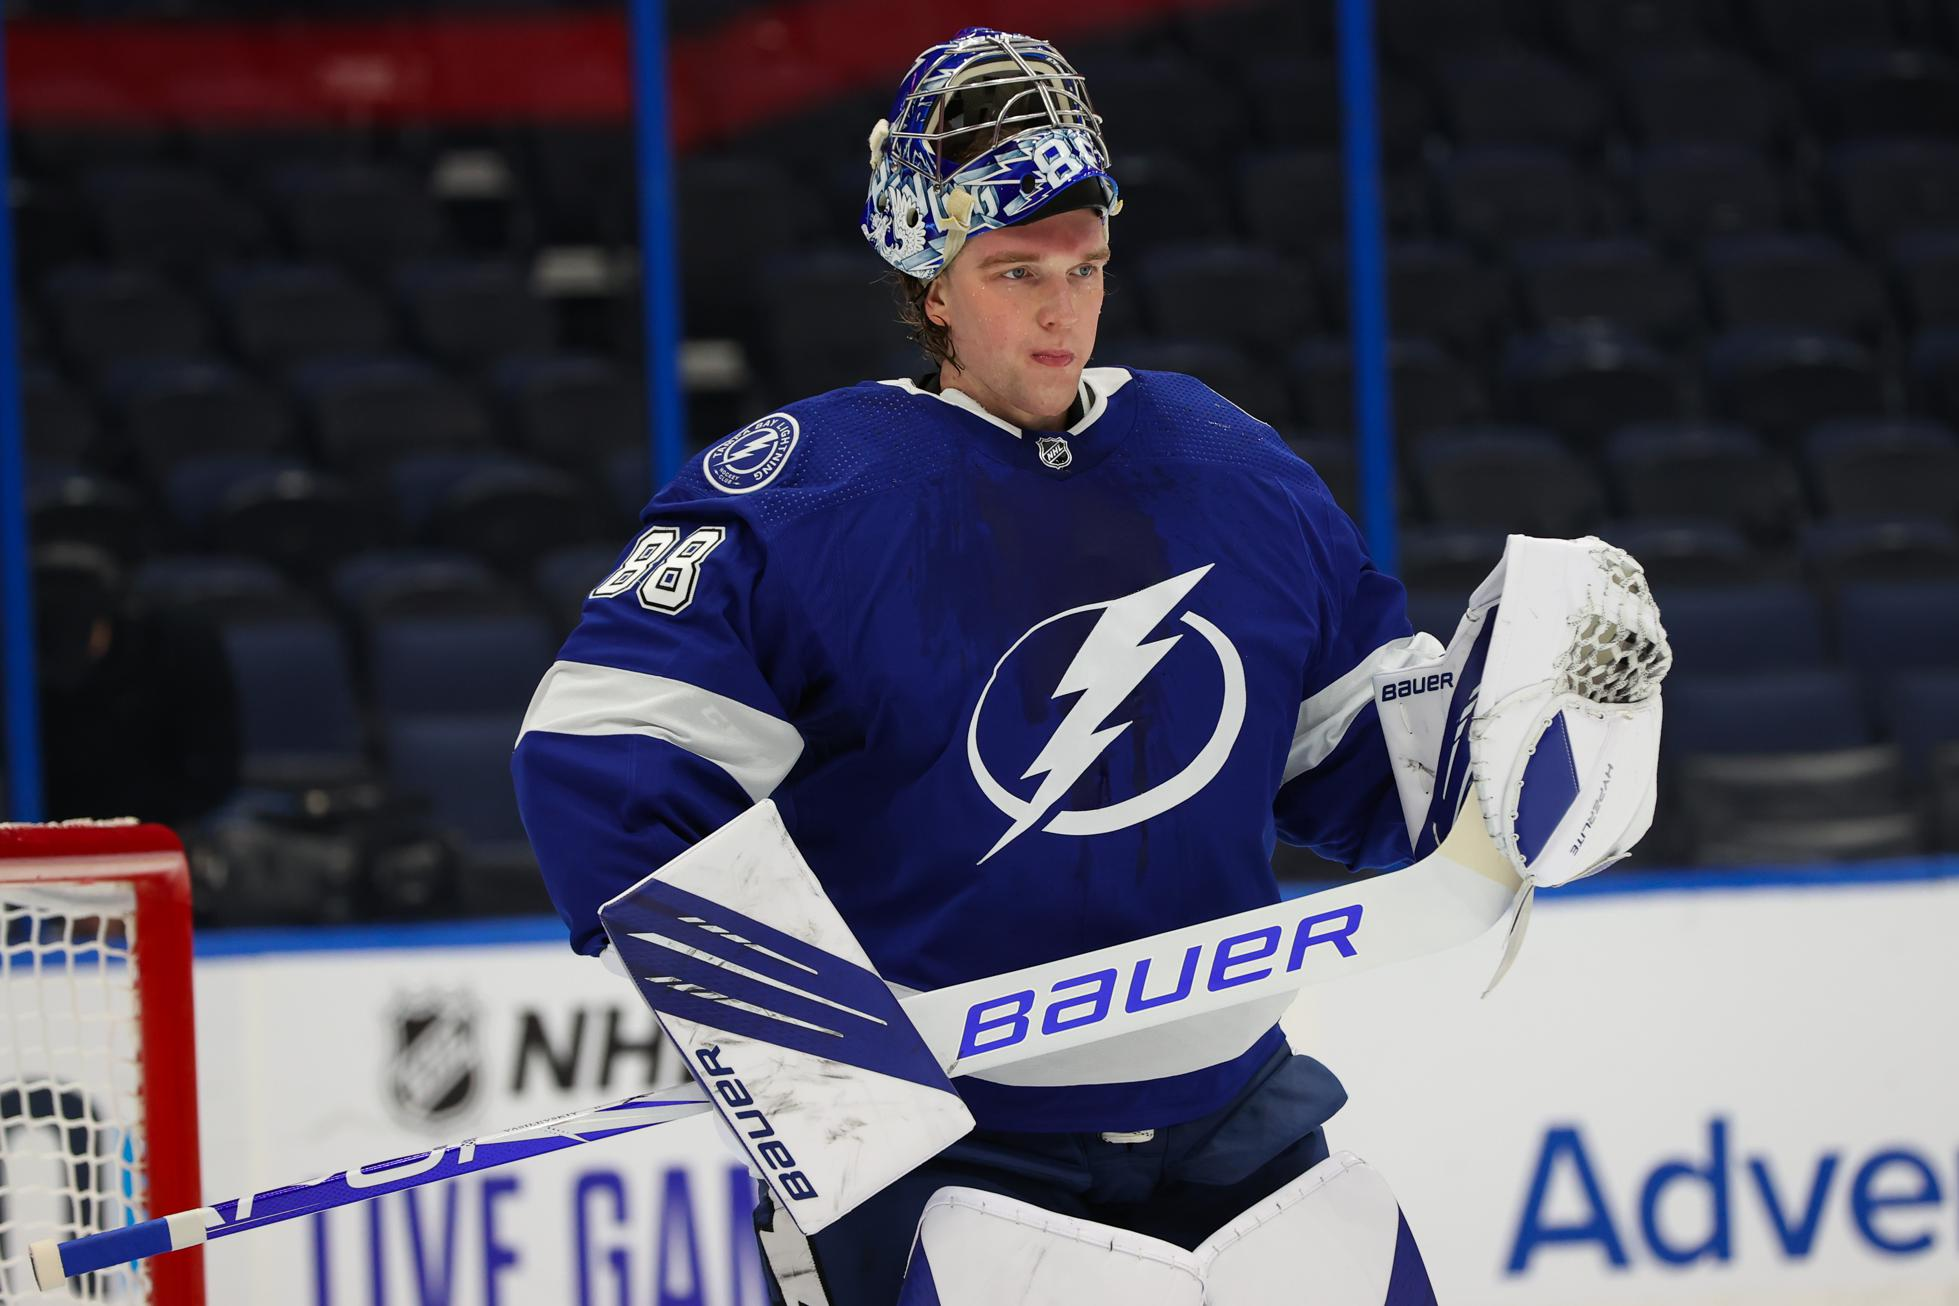 Andrei Vasilevskiy #88 of the Tampa Bay Lightning skates against the Chicago Blackhawks during the second period at Amalie Arena on January 15, 2021 in Tampa, Florida.